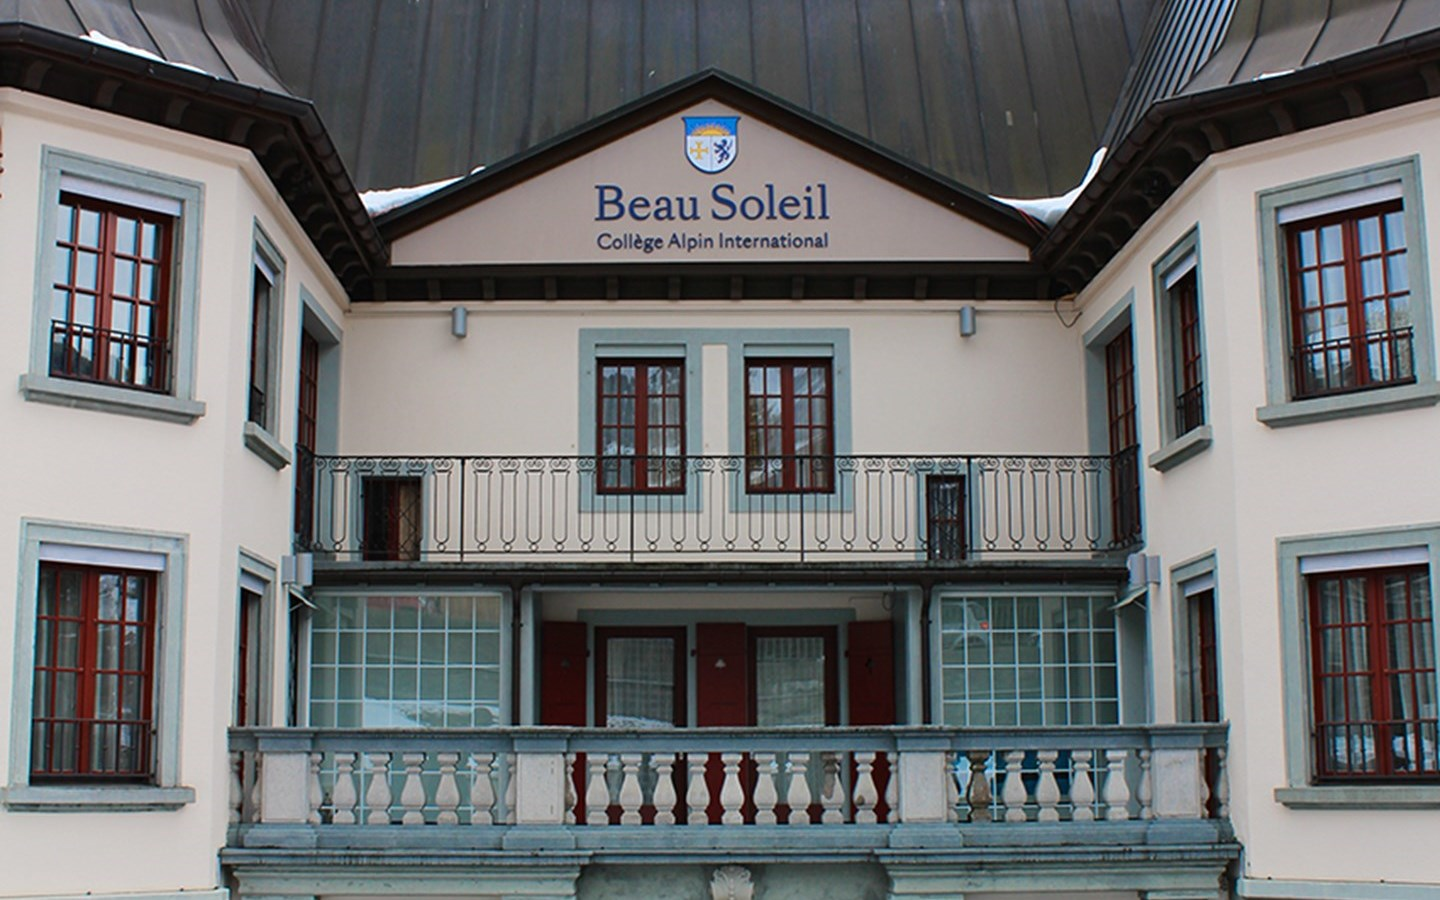 Location and Campus | Beau Soleil College Alpin International